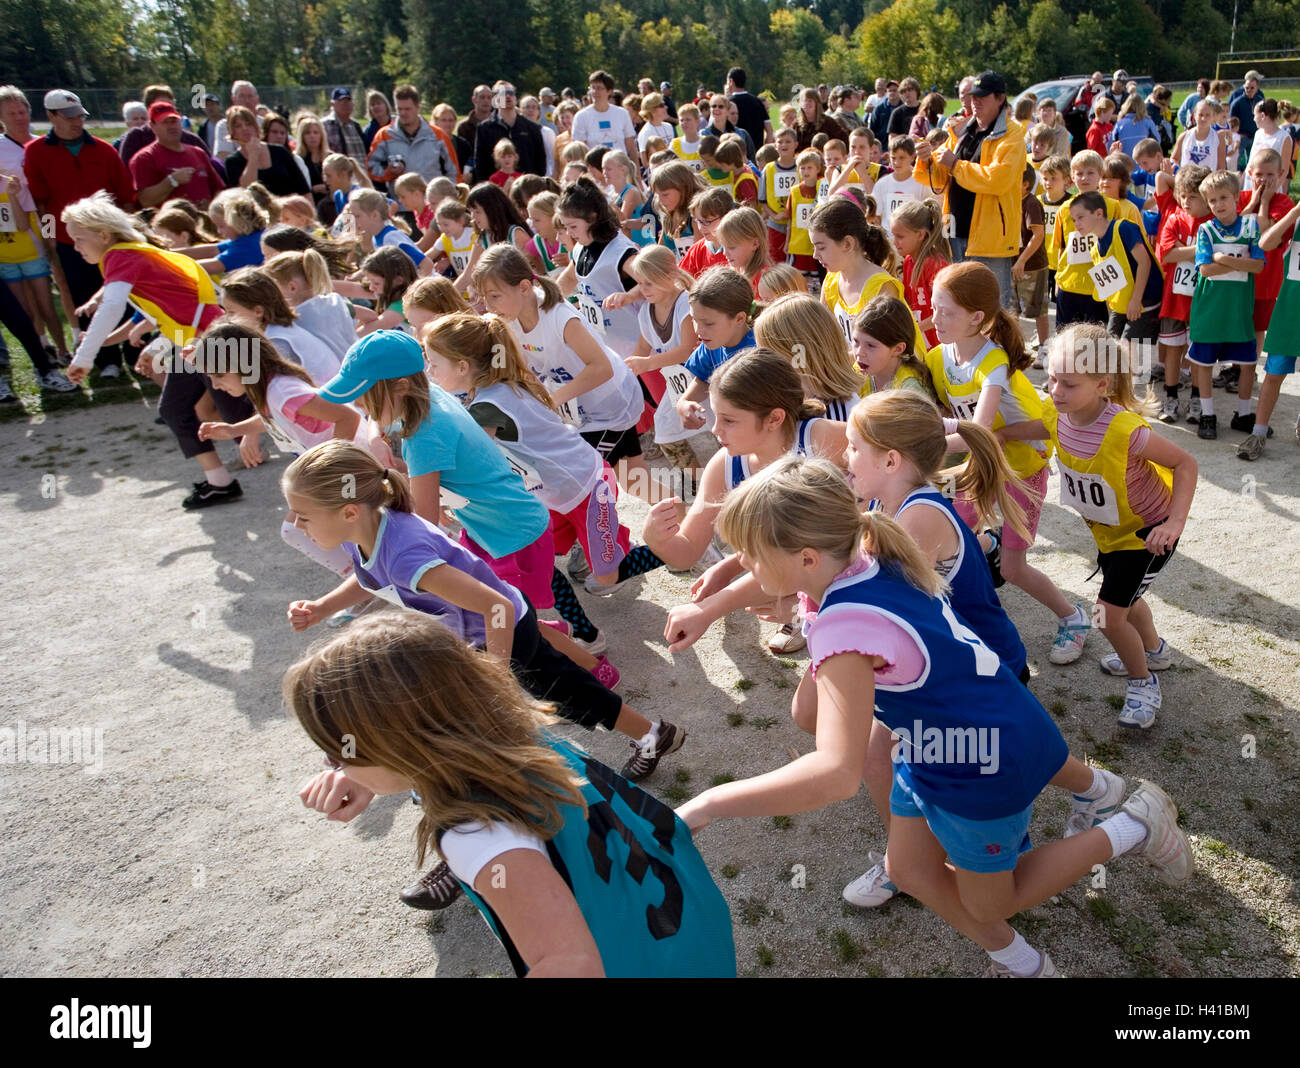 girls at starting line in track race - Stock Image